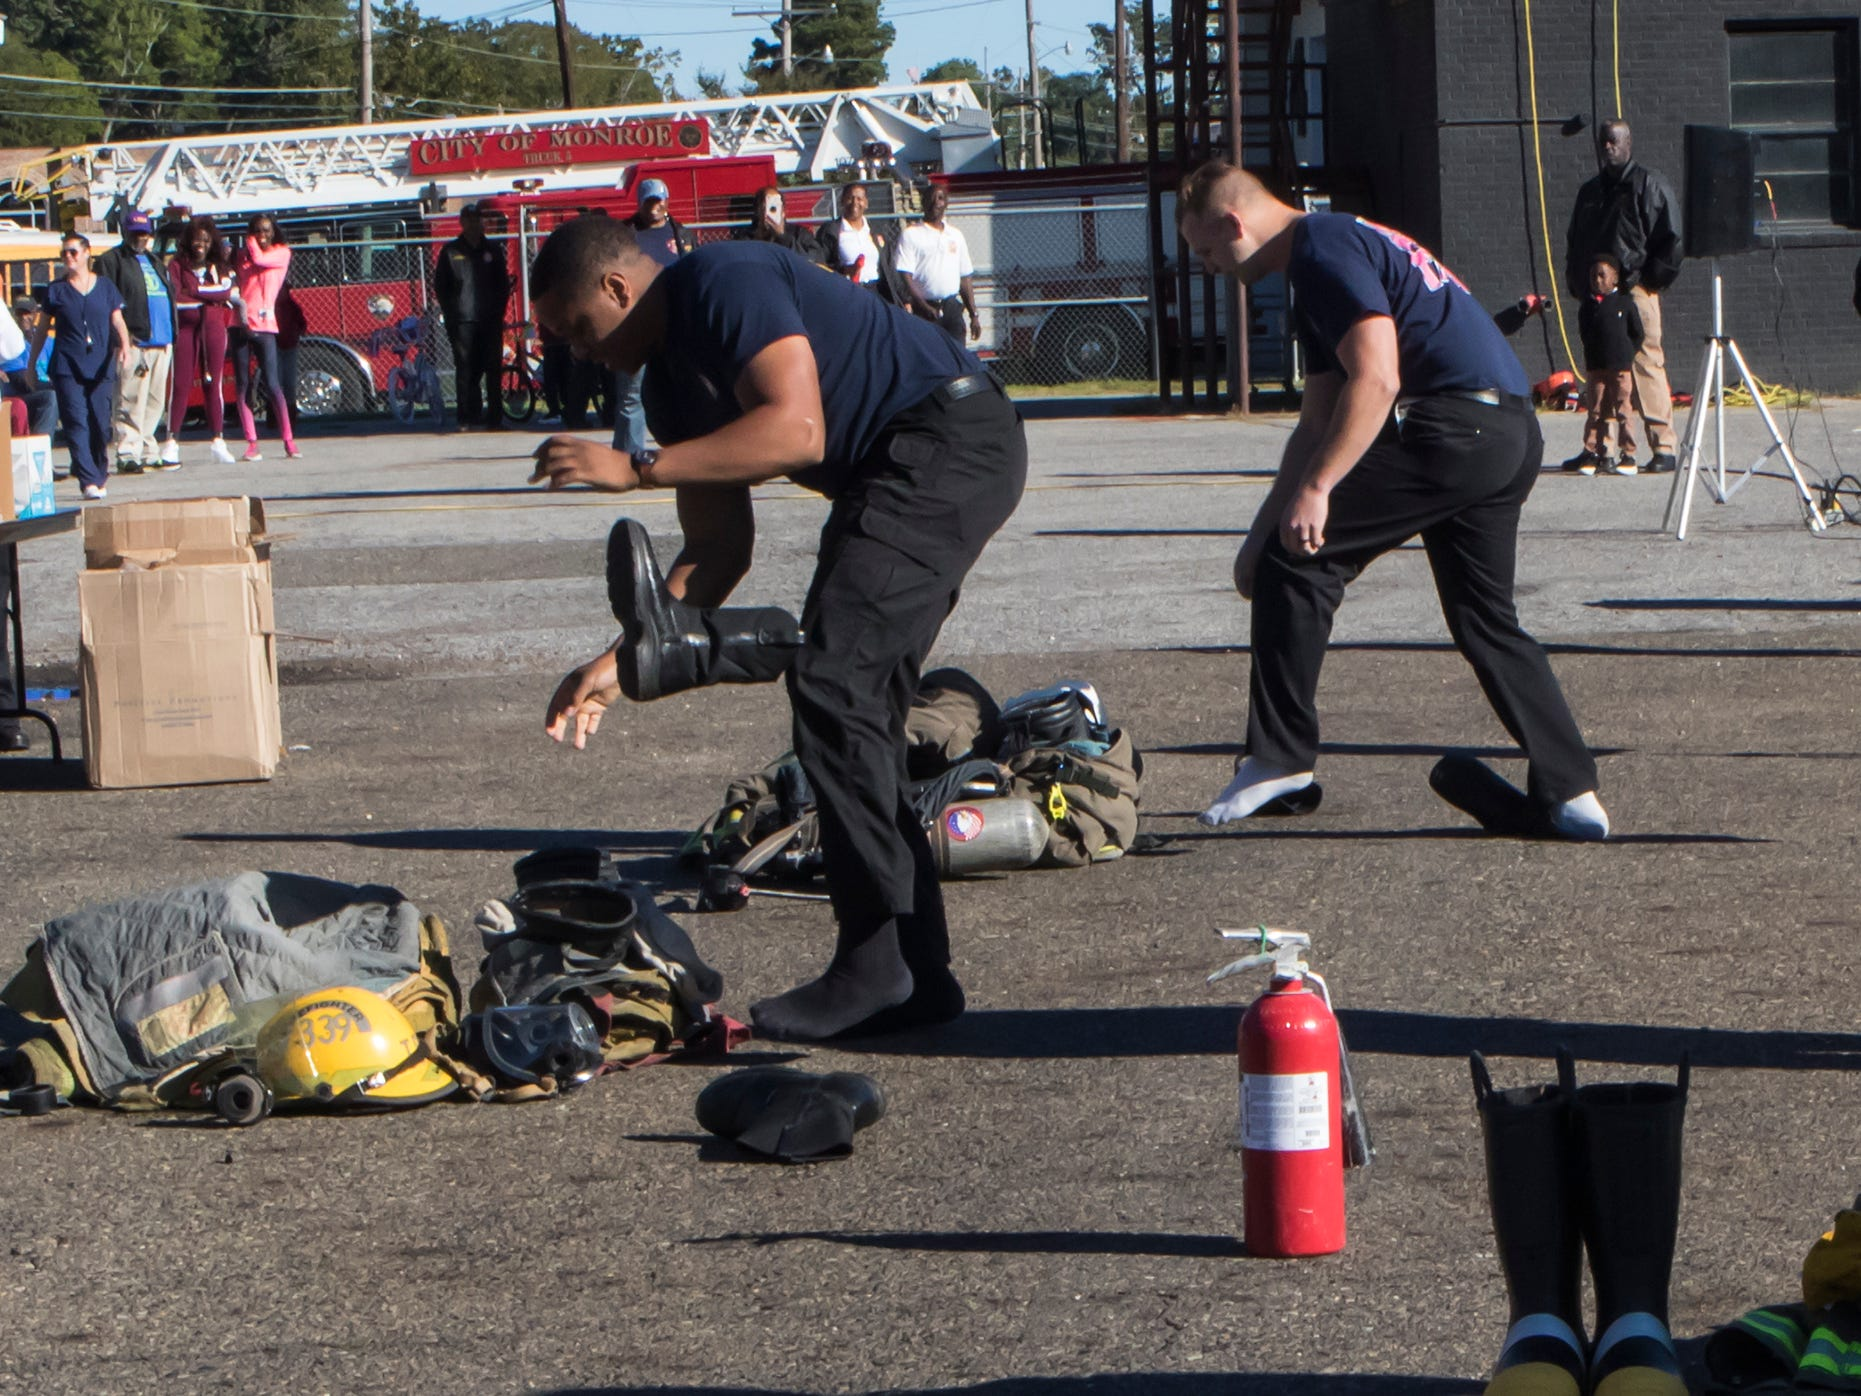 Monroe firefighters raced to get their protective gear on the fastest in front of a group of area grade school children during a fire prevention week demonstration held in Monroe, La. on Oct. 11.